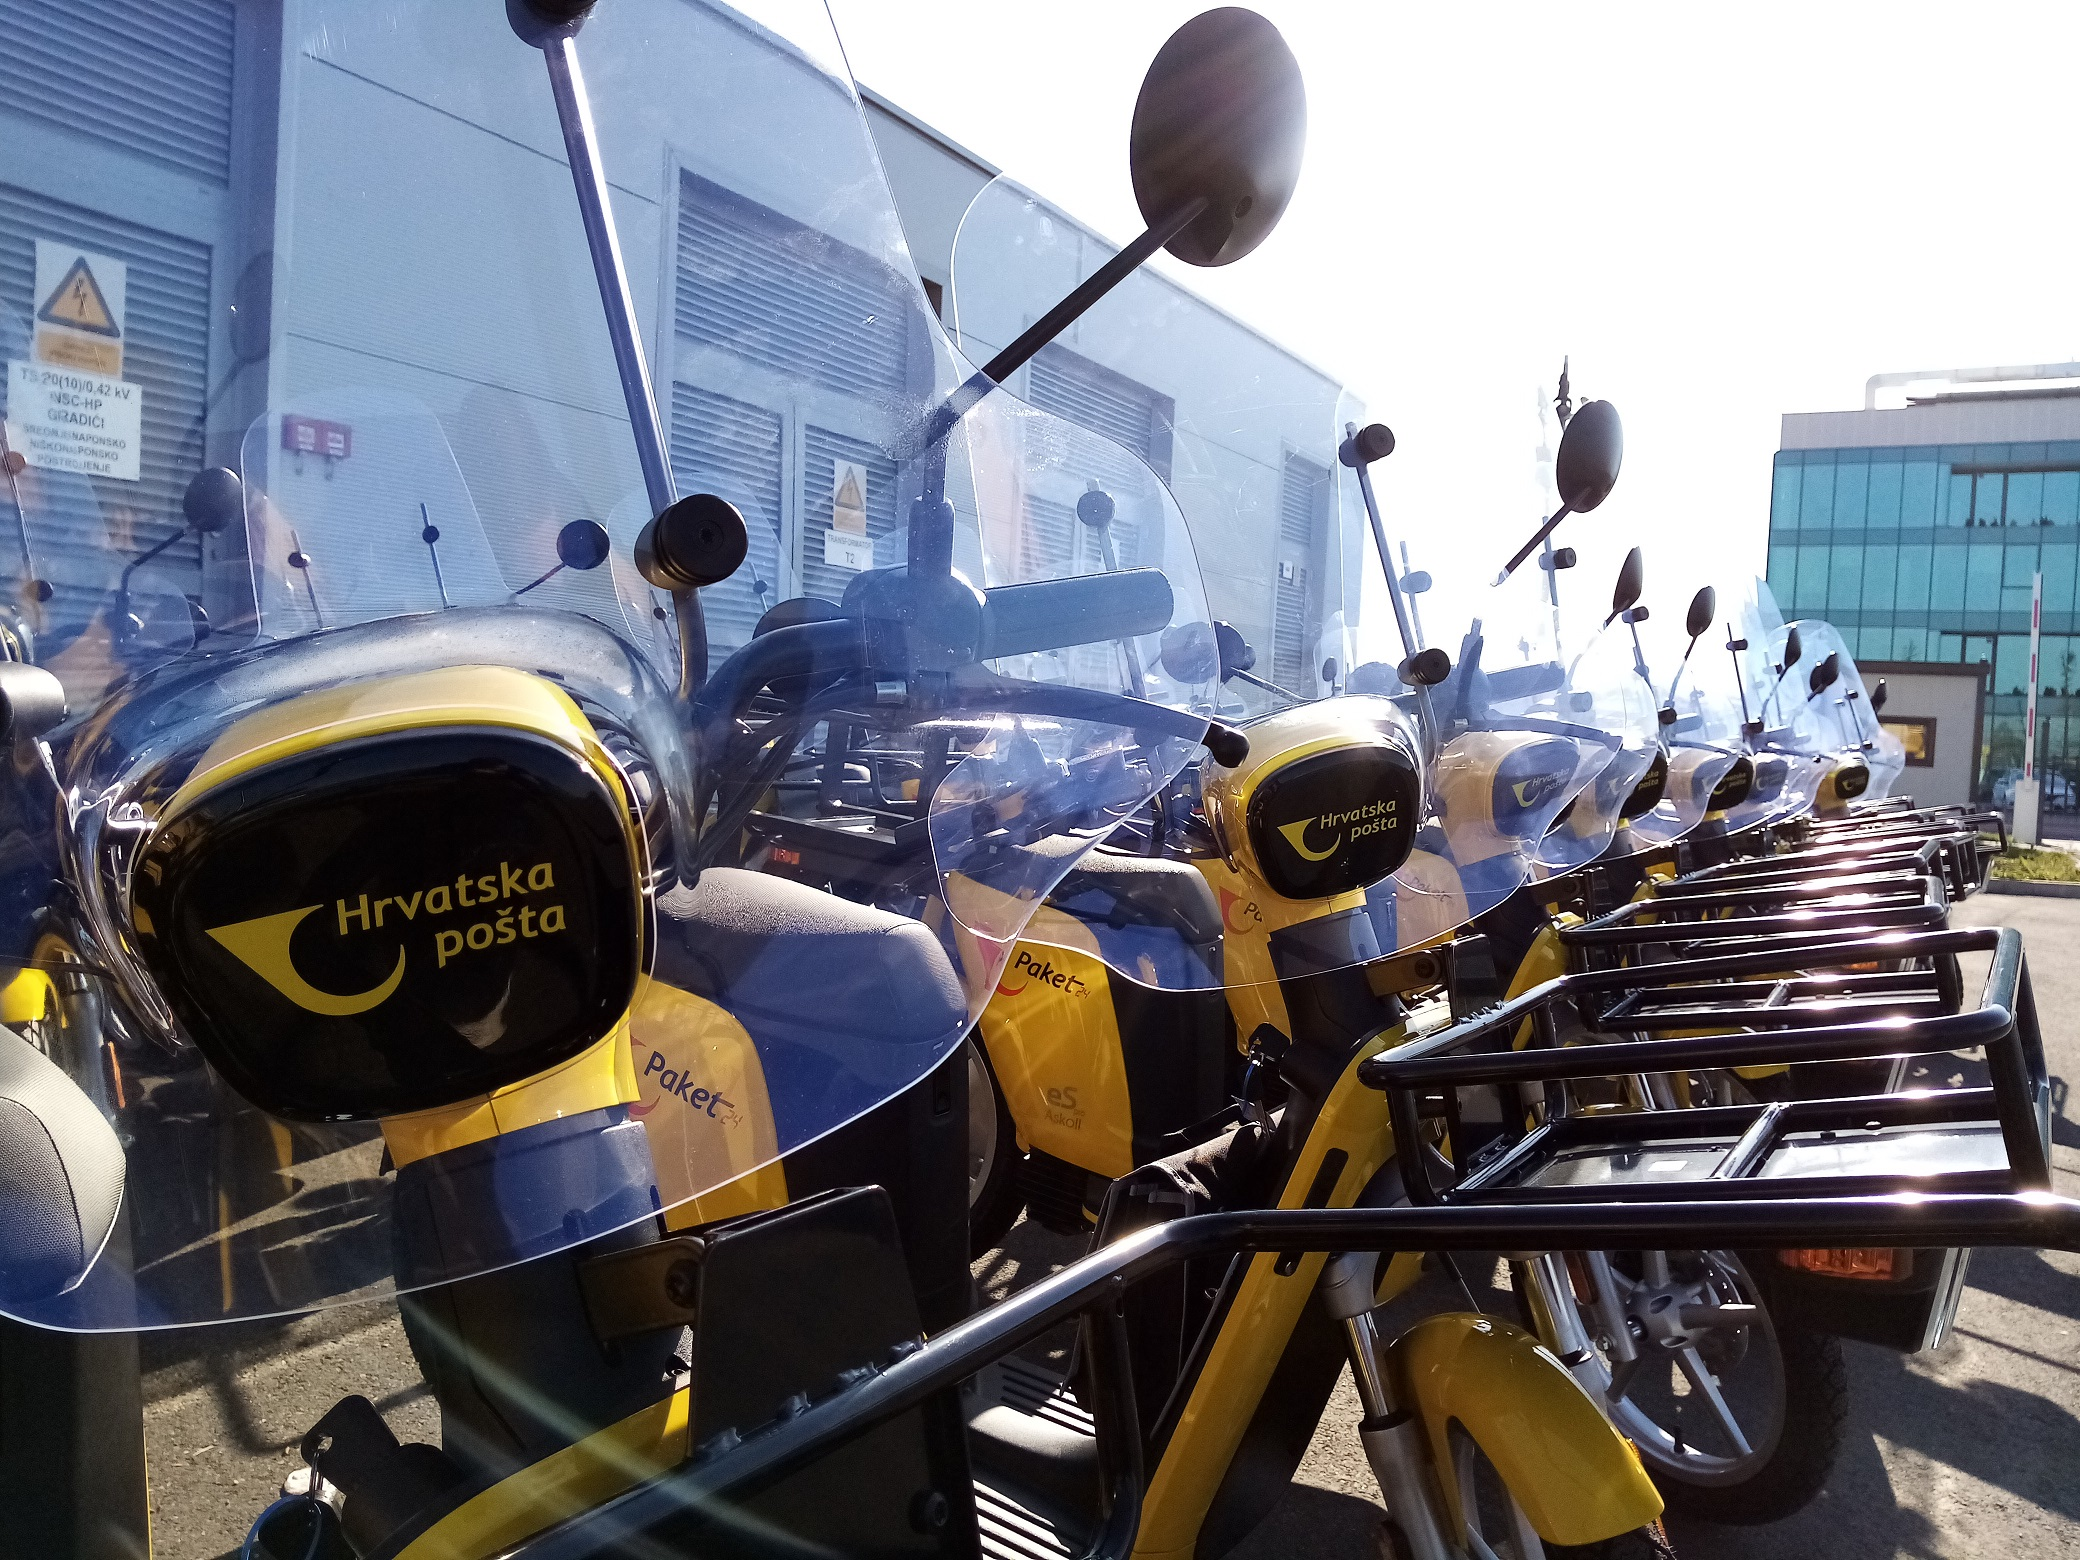 Croatian postal delivery workers get new electric mopeds